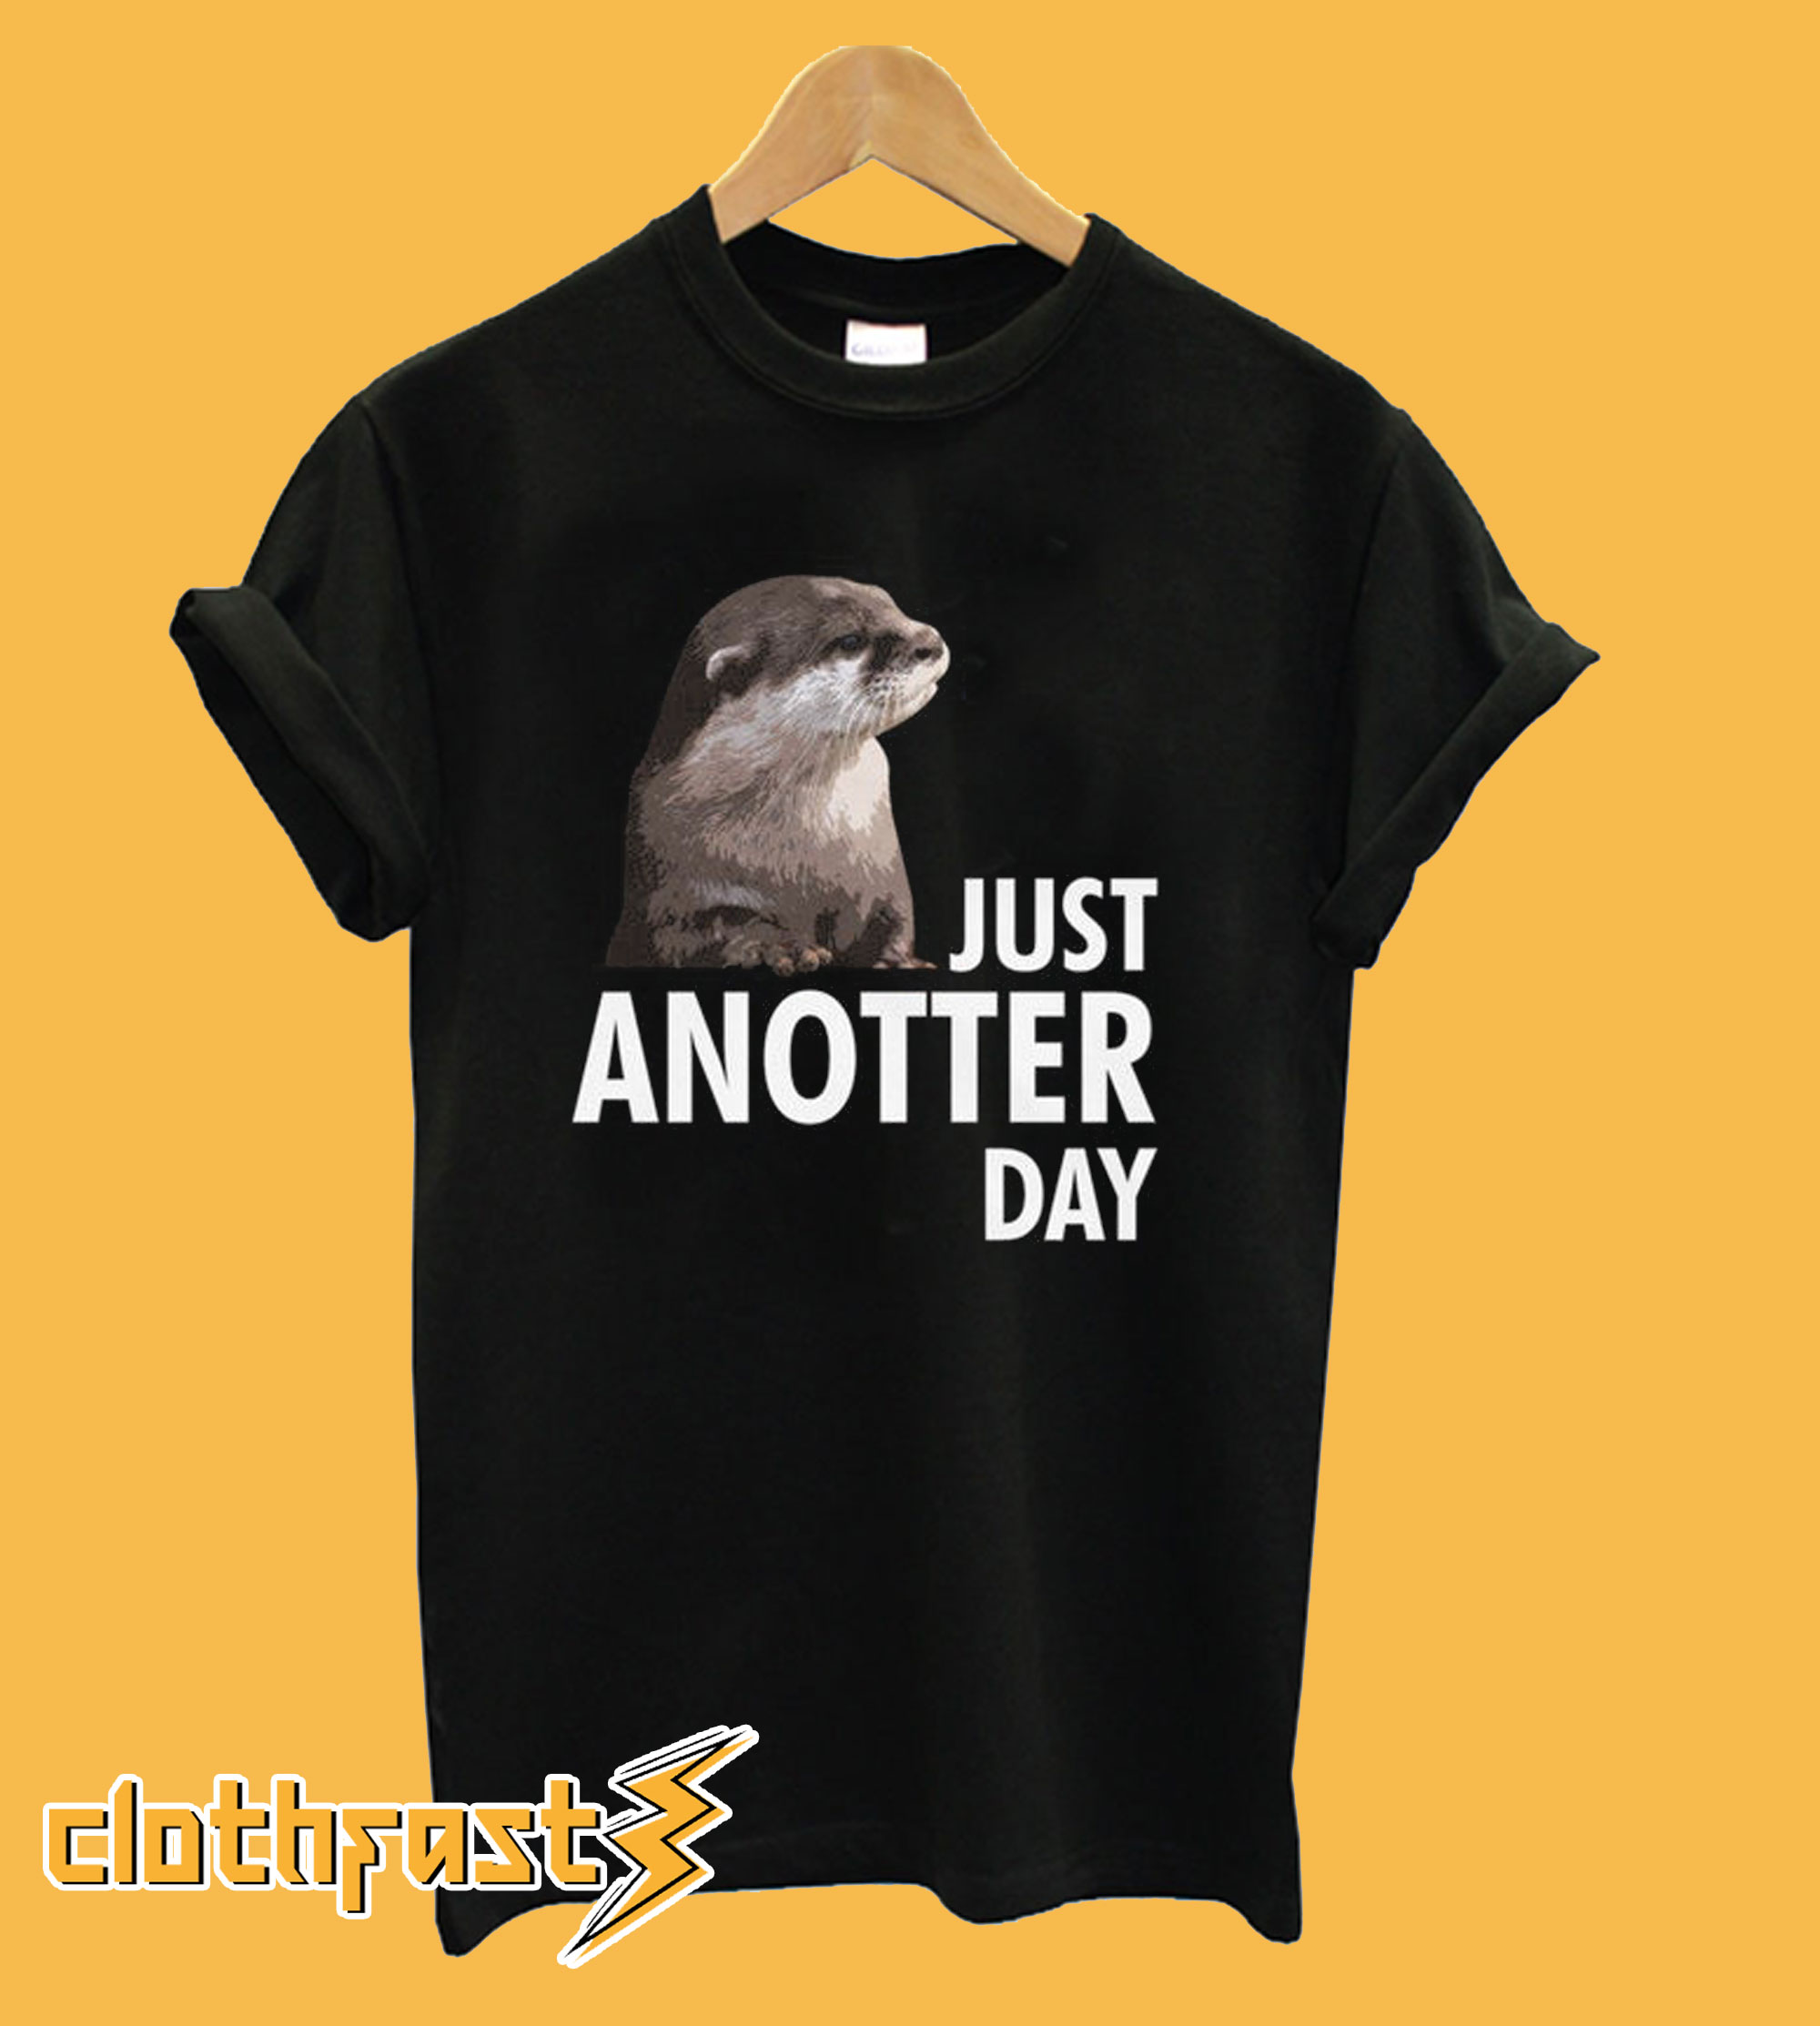 Just Anotter Day T-Shirt